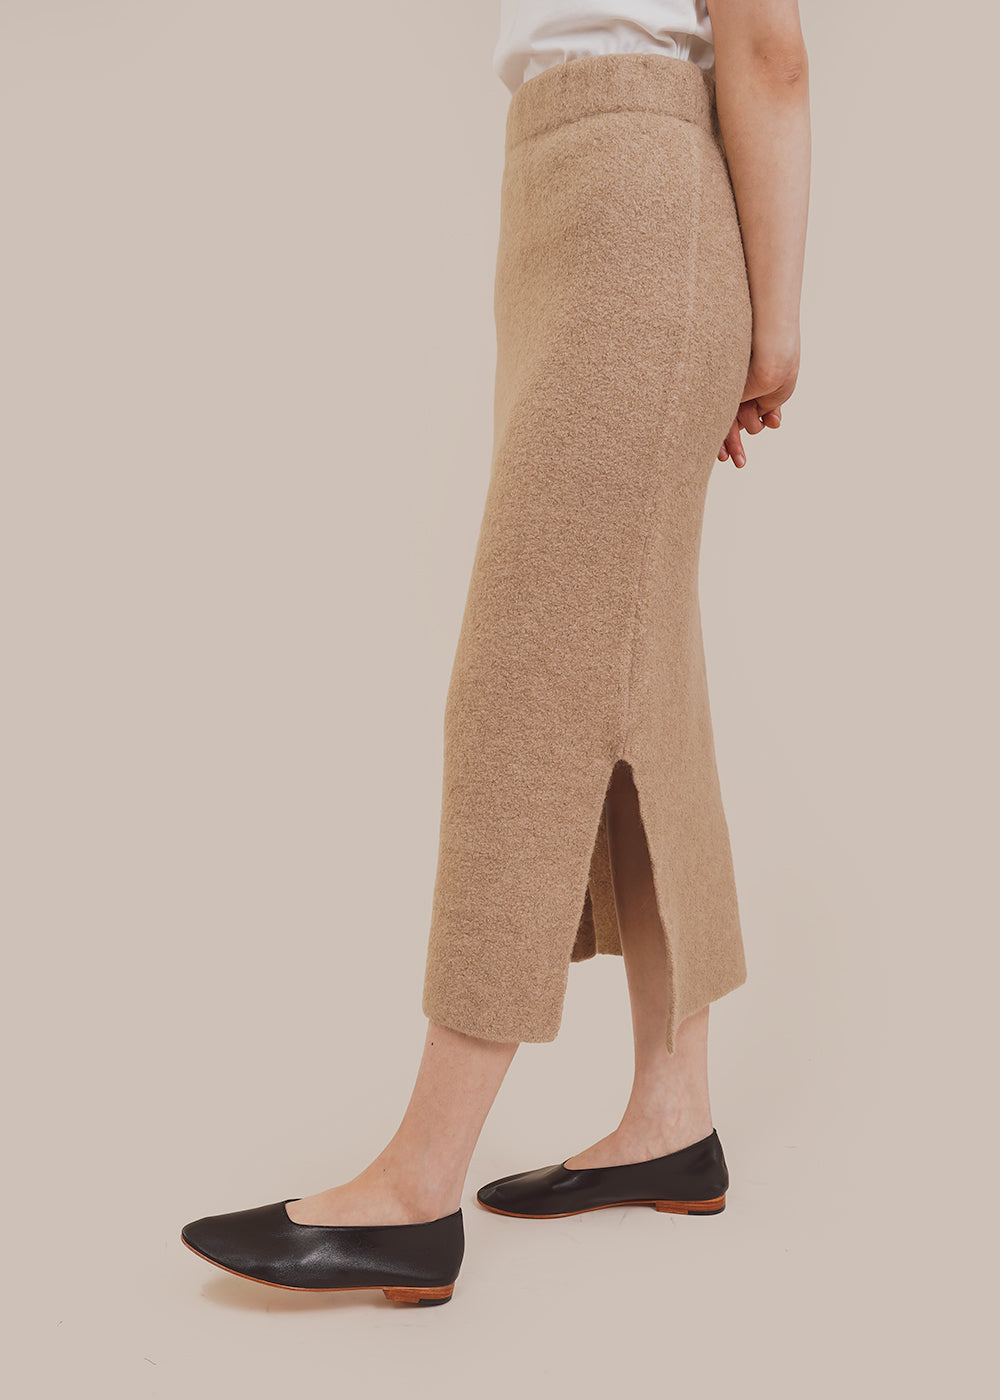 Ecru Split Skirt